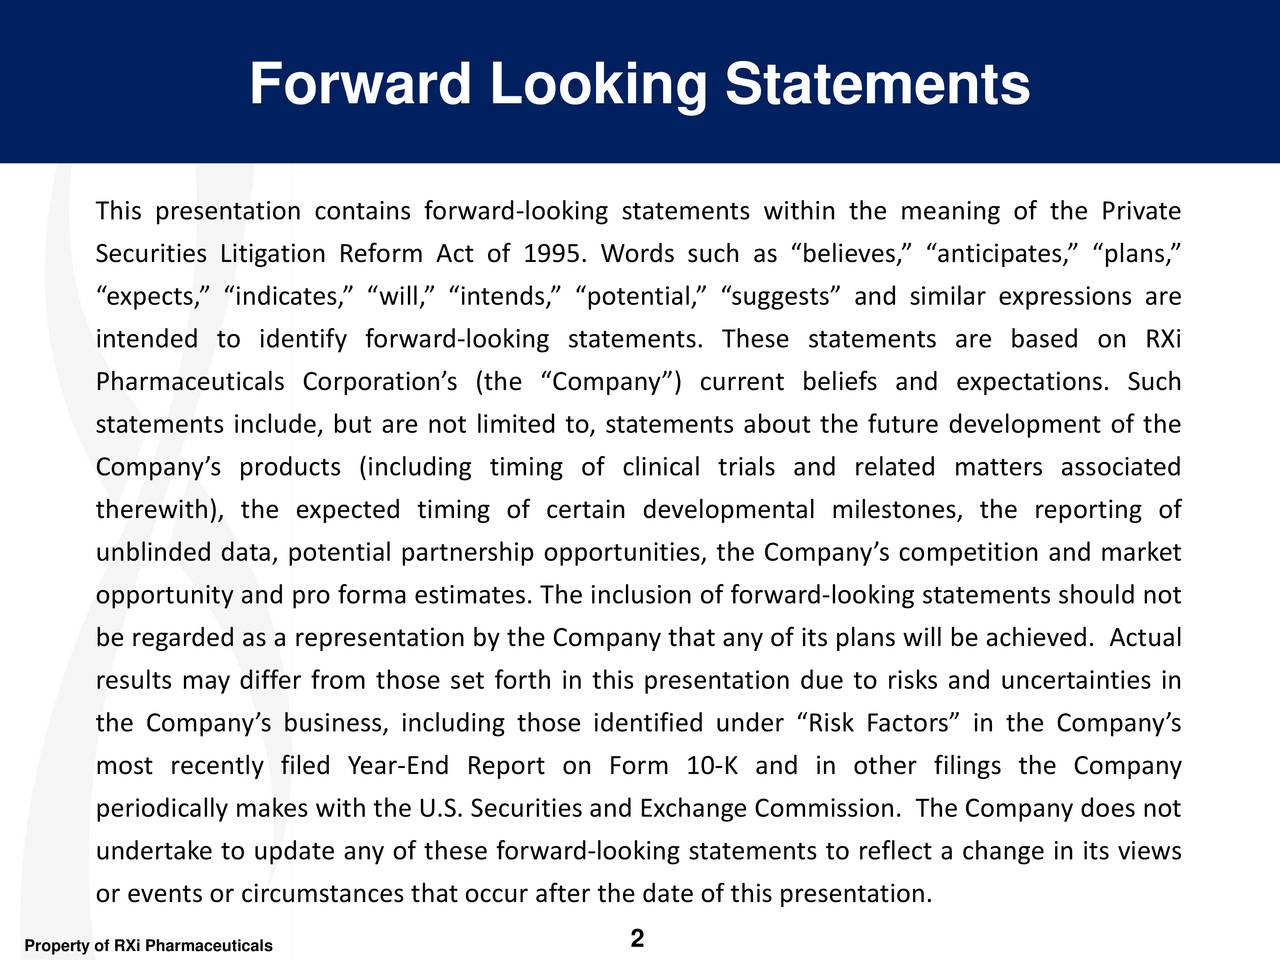 """This presentation contains forward-looking statements within the meaning of the Private Securities Litigation Reform Act of 1995. Words such as """"believes,"""" """"anticipates,"""" """"plans,"""" """"expects,"""" """"indicates,"""" """"will,"""" """"intends,"""" """"potential,"""" """"suggests"""" and similar expressions are intended to identify forward-looking statements. These statements are based on RXi Pharmaceuticals Corporation's (the """"Company"""") current beliefs and expectations. Such statements include, but are not limited to, statements about the future development of the Company's products (including timing of clinical trials and related matters associated therewith), the expected timing of certain developmental milestones, the reporting of unblinded data, potential partnership opportunities, the Company'scompetition and market opportunity and pro forma estimates. The inclusion of forward-looking statements should not be regarded as a representation by the Companythat any of its plans will be achieved. Actual results may differ from those set forth in this presentation due to risks and uncertainties in the Company's business, including those identified under """"Risk Factors"""" in the Company's most recently filed Year-End Report on Form 10-K and in other filings the Company periodically makeswith the U.S. Securities and Exchange Commission. The Companydoes not undertake to update any of these forward-looking statements to reflect a change in its views or events or circumstances that occur after the date of this presentation."""